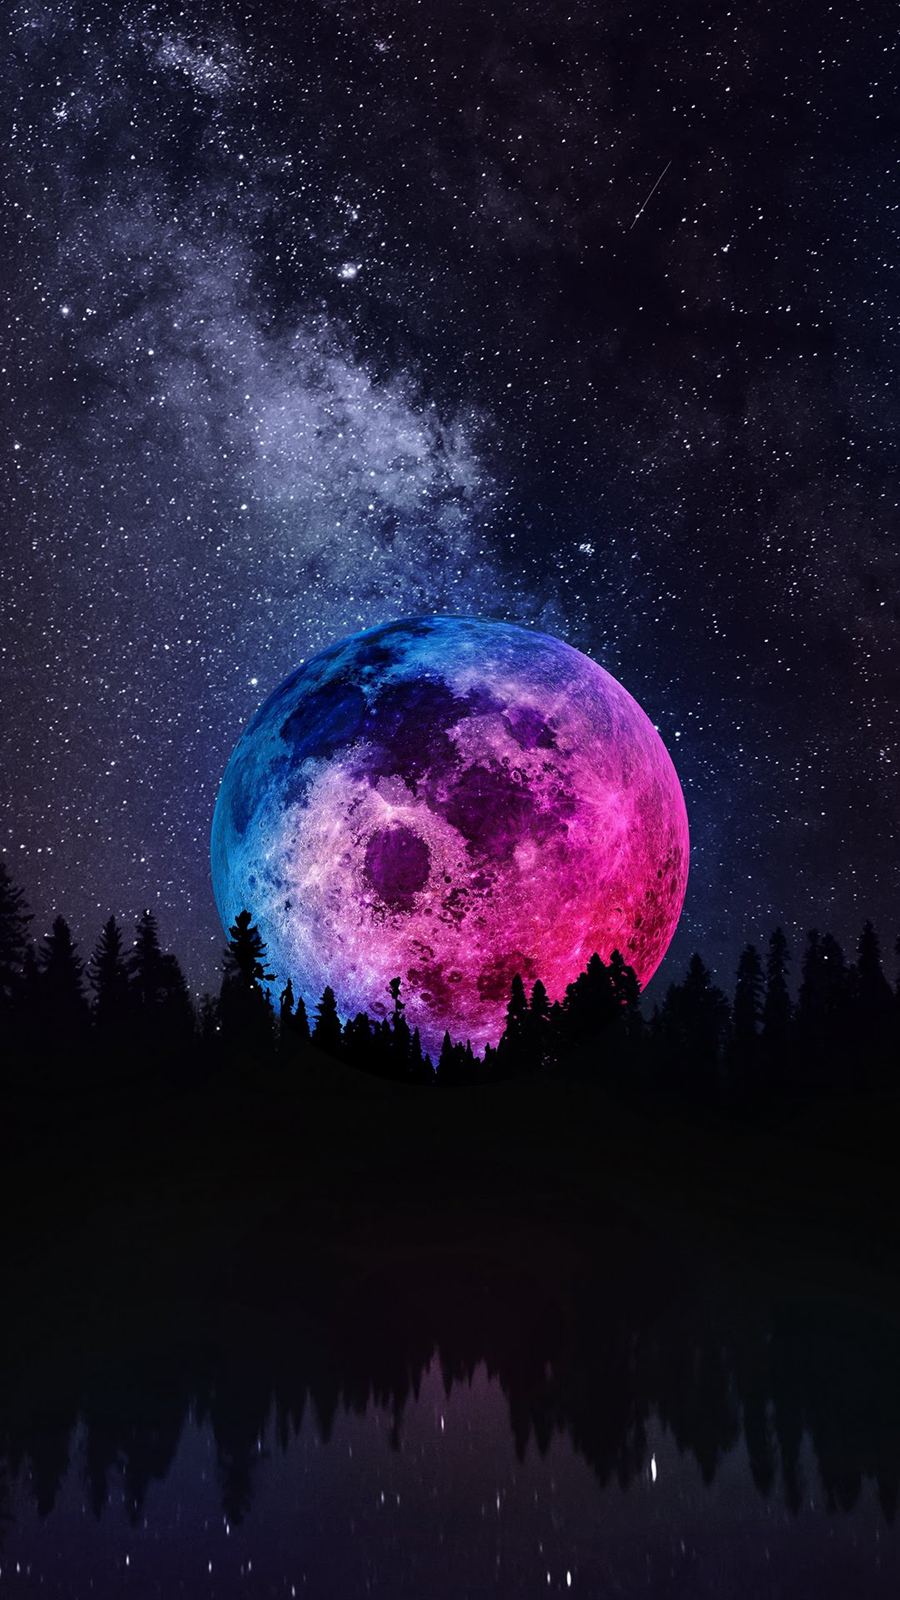 Space Wallpapers Free Download - Best Moon, Sky Wallpapers ...